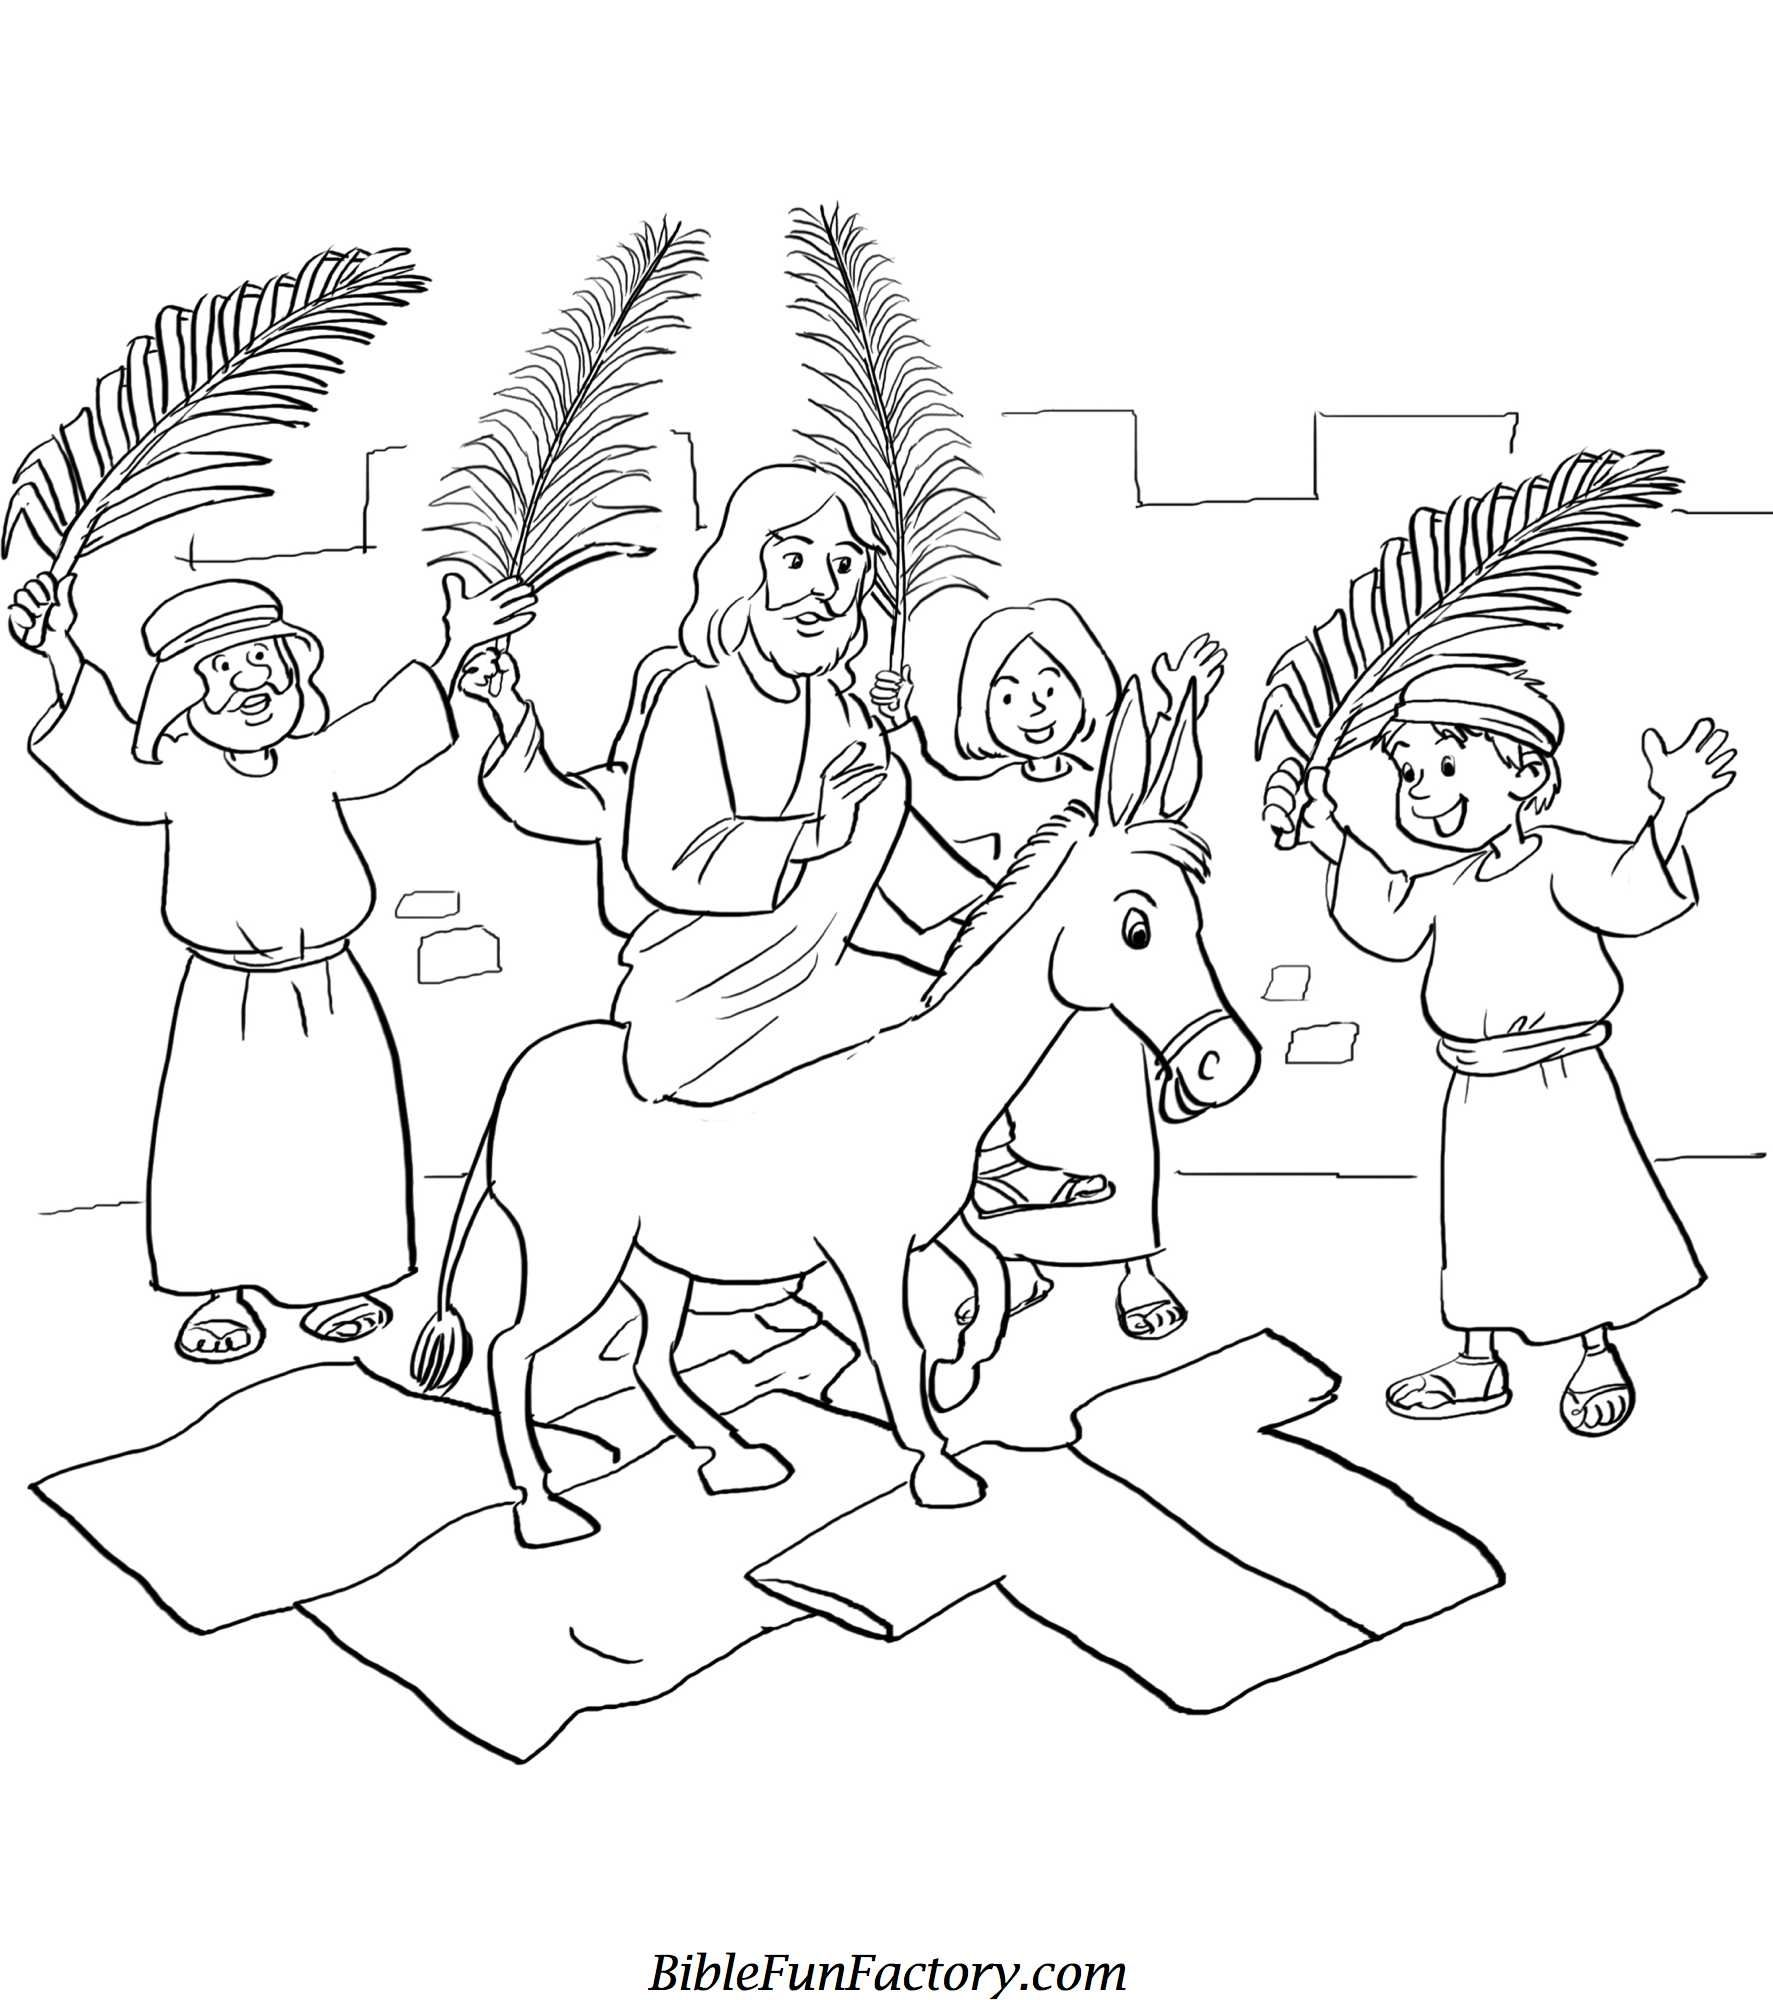 Free coloring pages bible